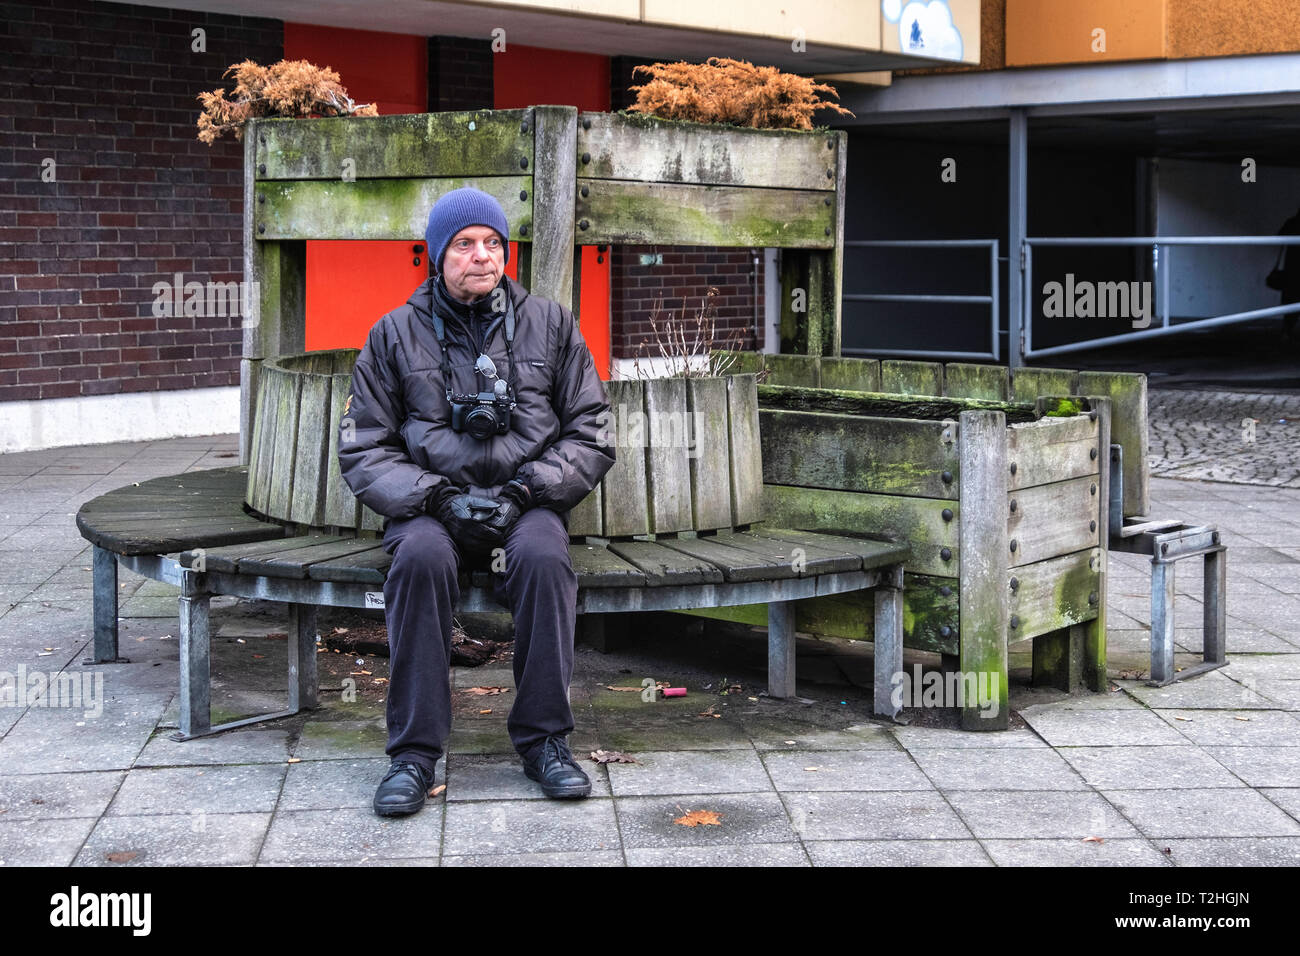 Elderly man with camera rests on a bench in Moabit, Berlin. Rustic wooden bench with plant pots - Stock Image